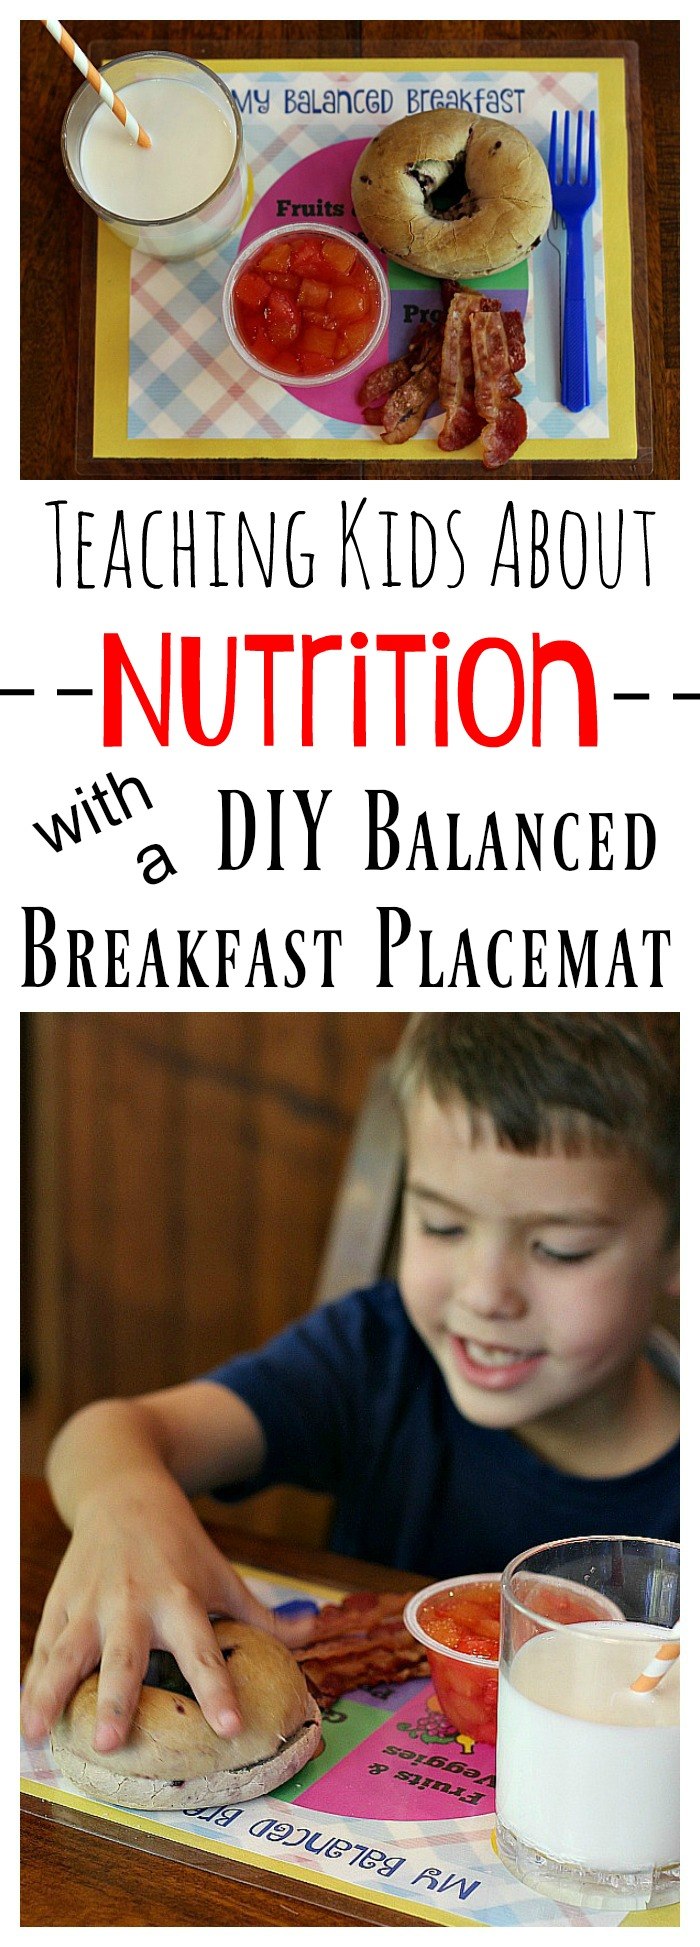 betterbreakfast-ad-teaching-kids-about-nutrition-with-a-diy-balanced-breakfast-placemat-final